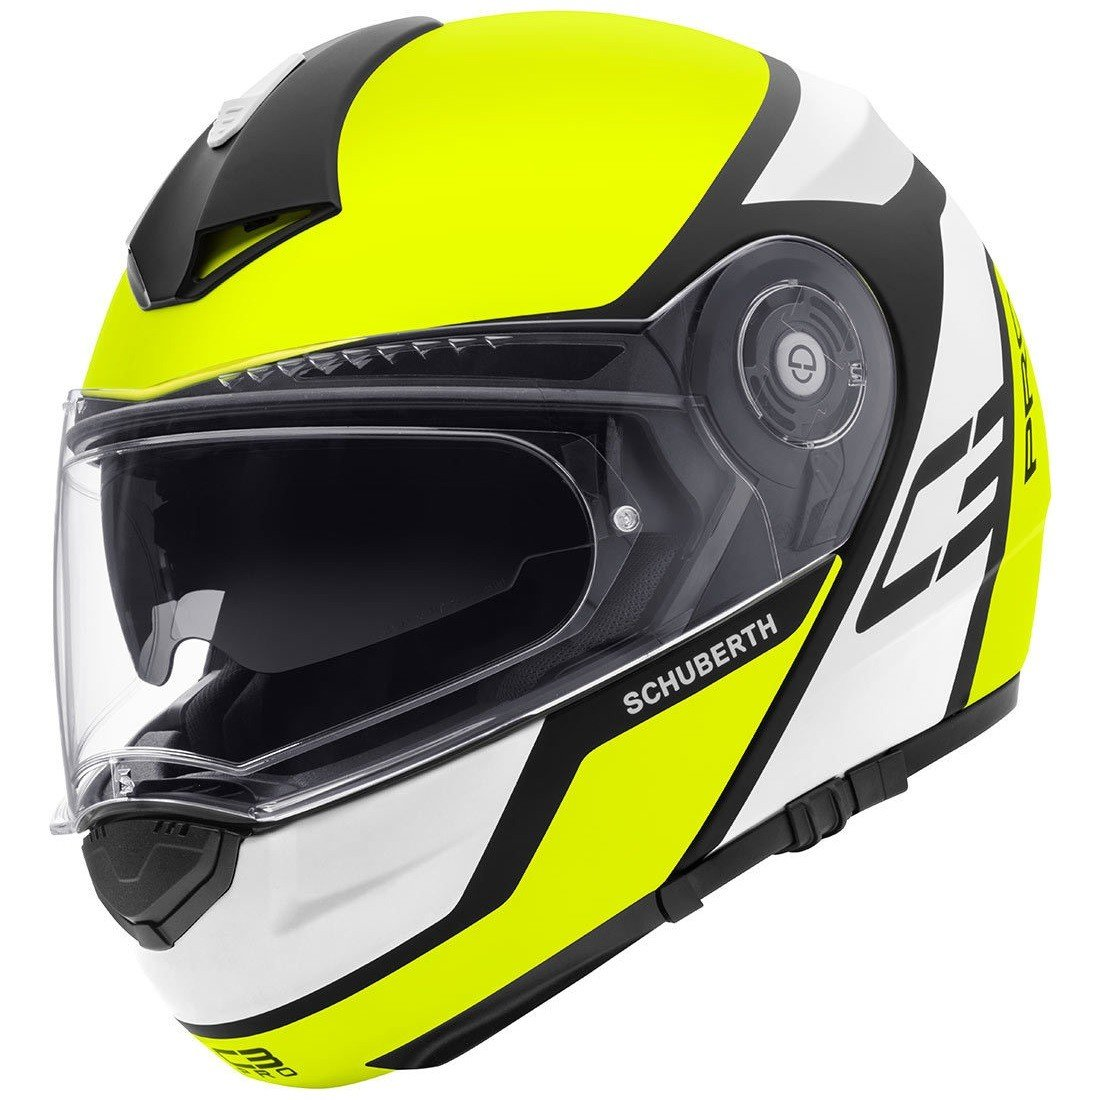 Schuberth C3 Pro Echo yellow L (58/59)